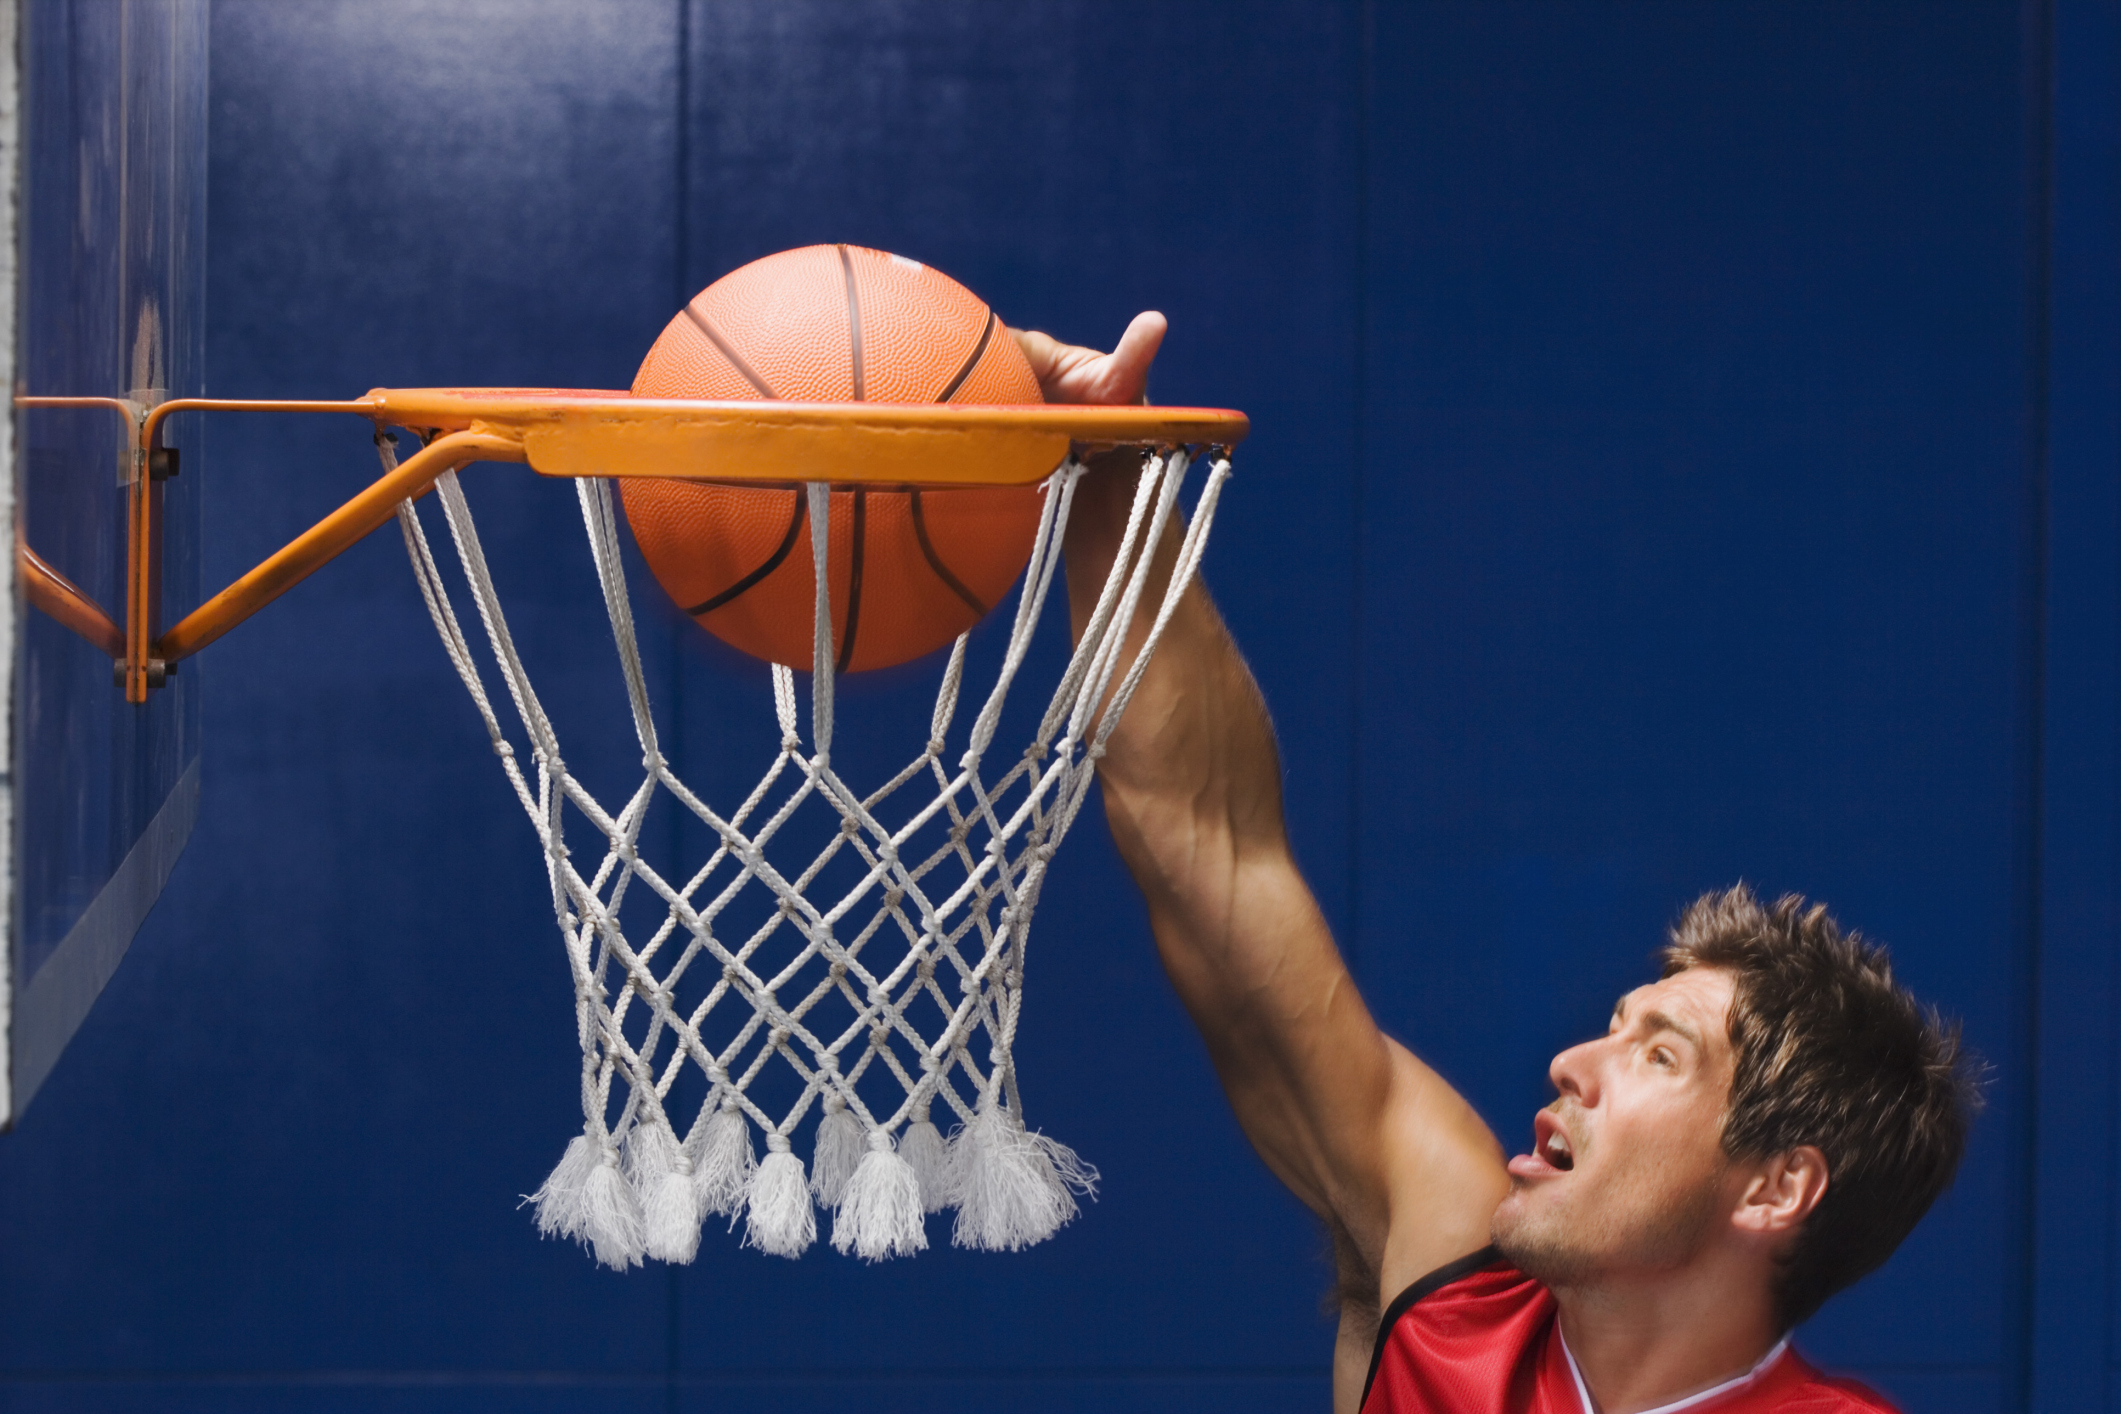 The Five Basic Skills of Basketball | SportsRec